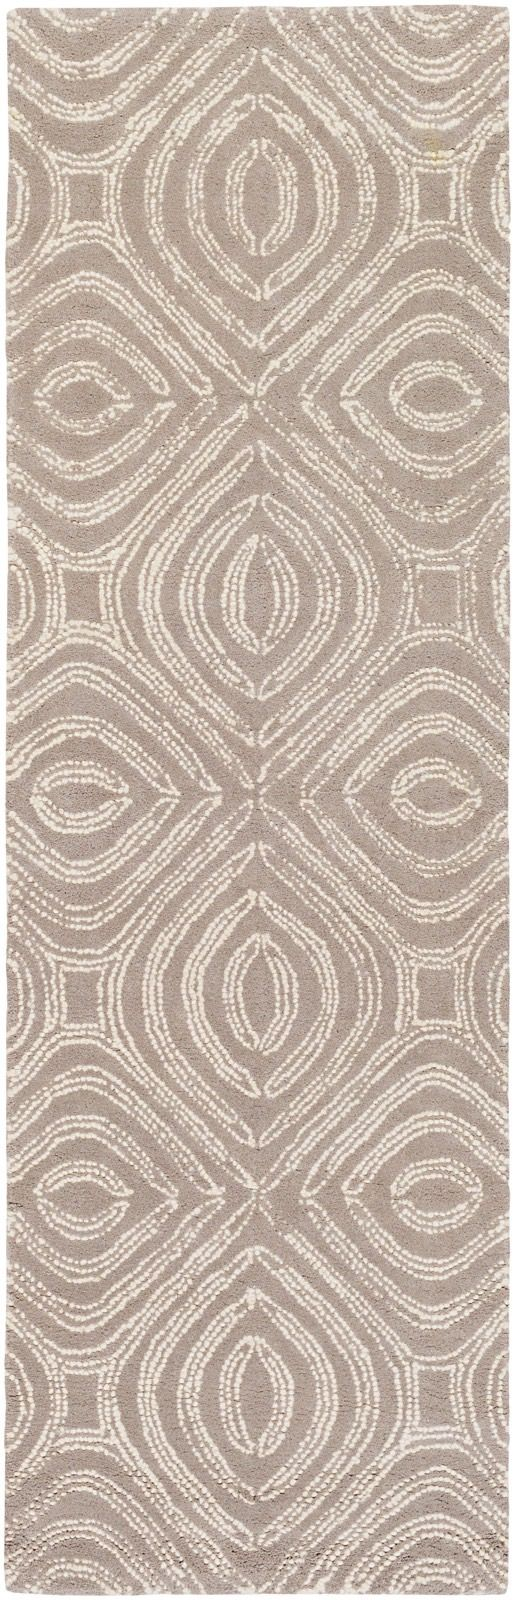 surya vega contemporary area rug collection